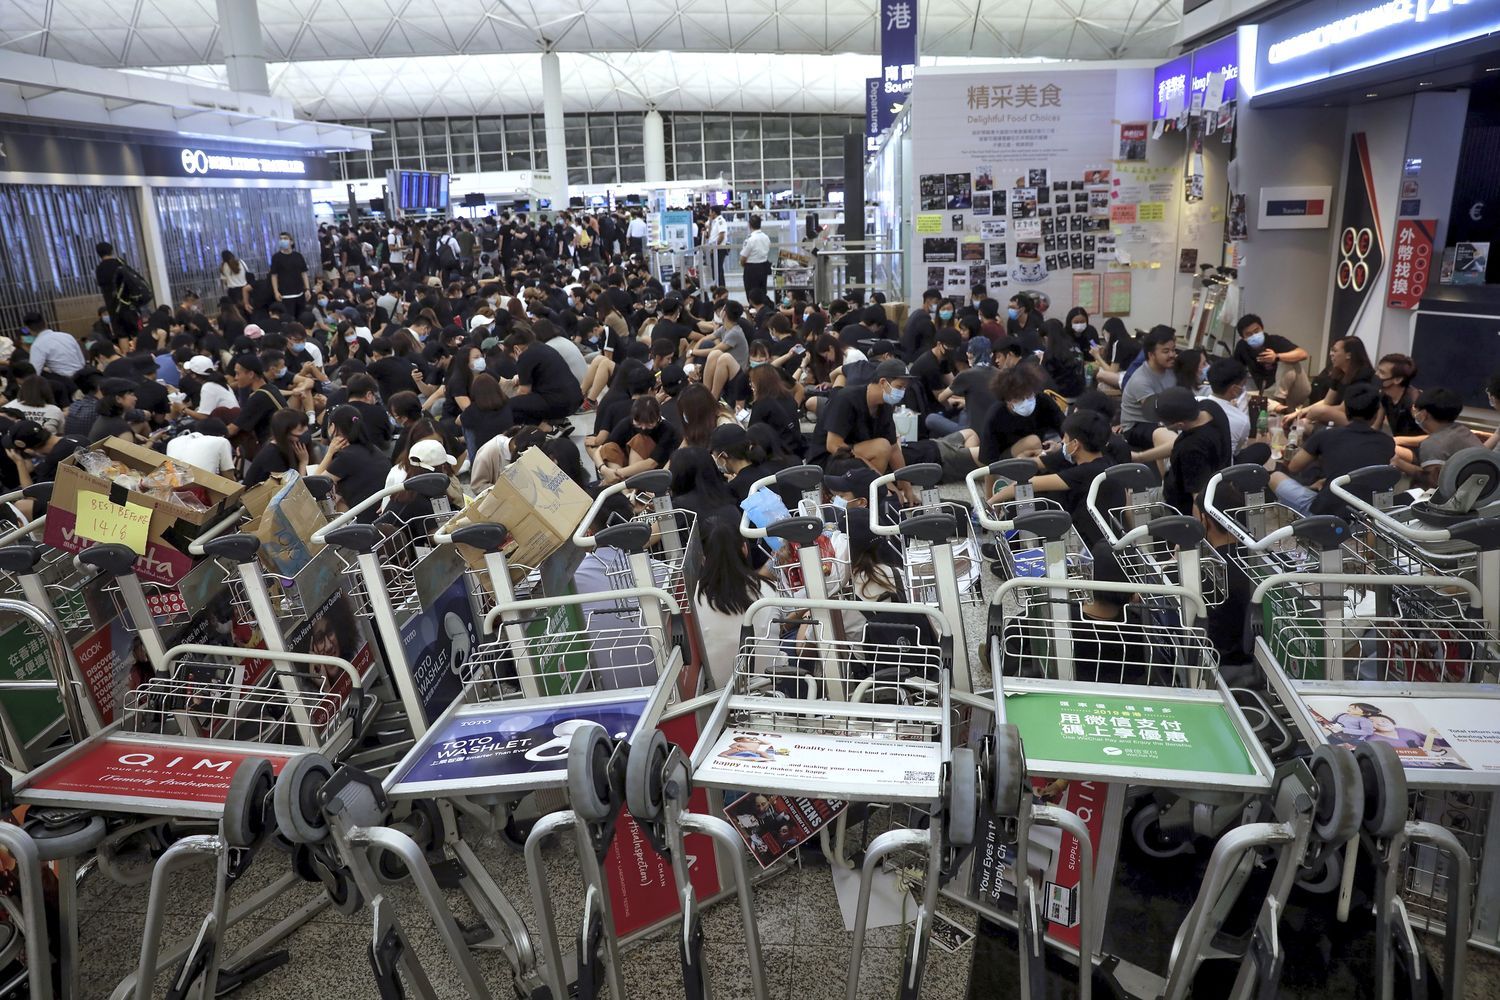 Protesters use luggage trolleys to block the walkway to the departure gates during a demonstration at the airport in Hong Kong on Tuesday.(AP photo)